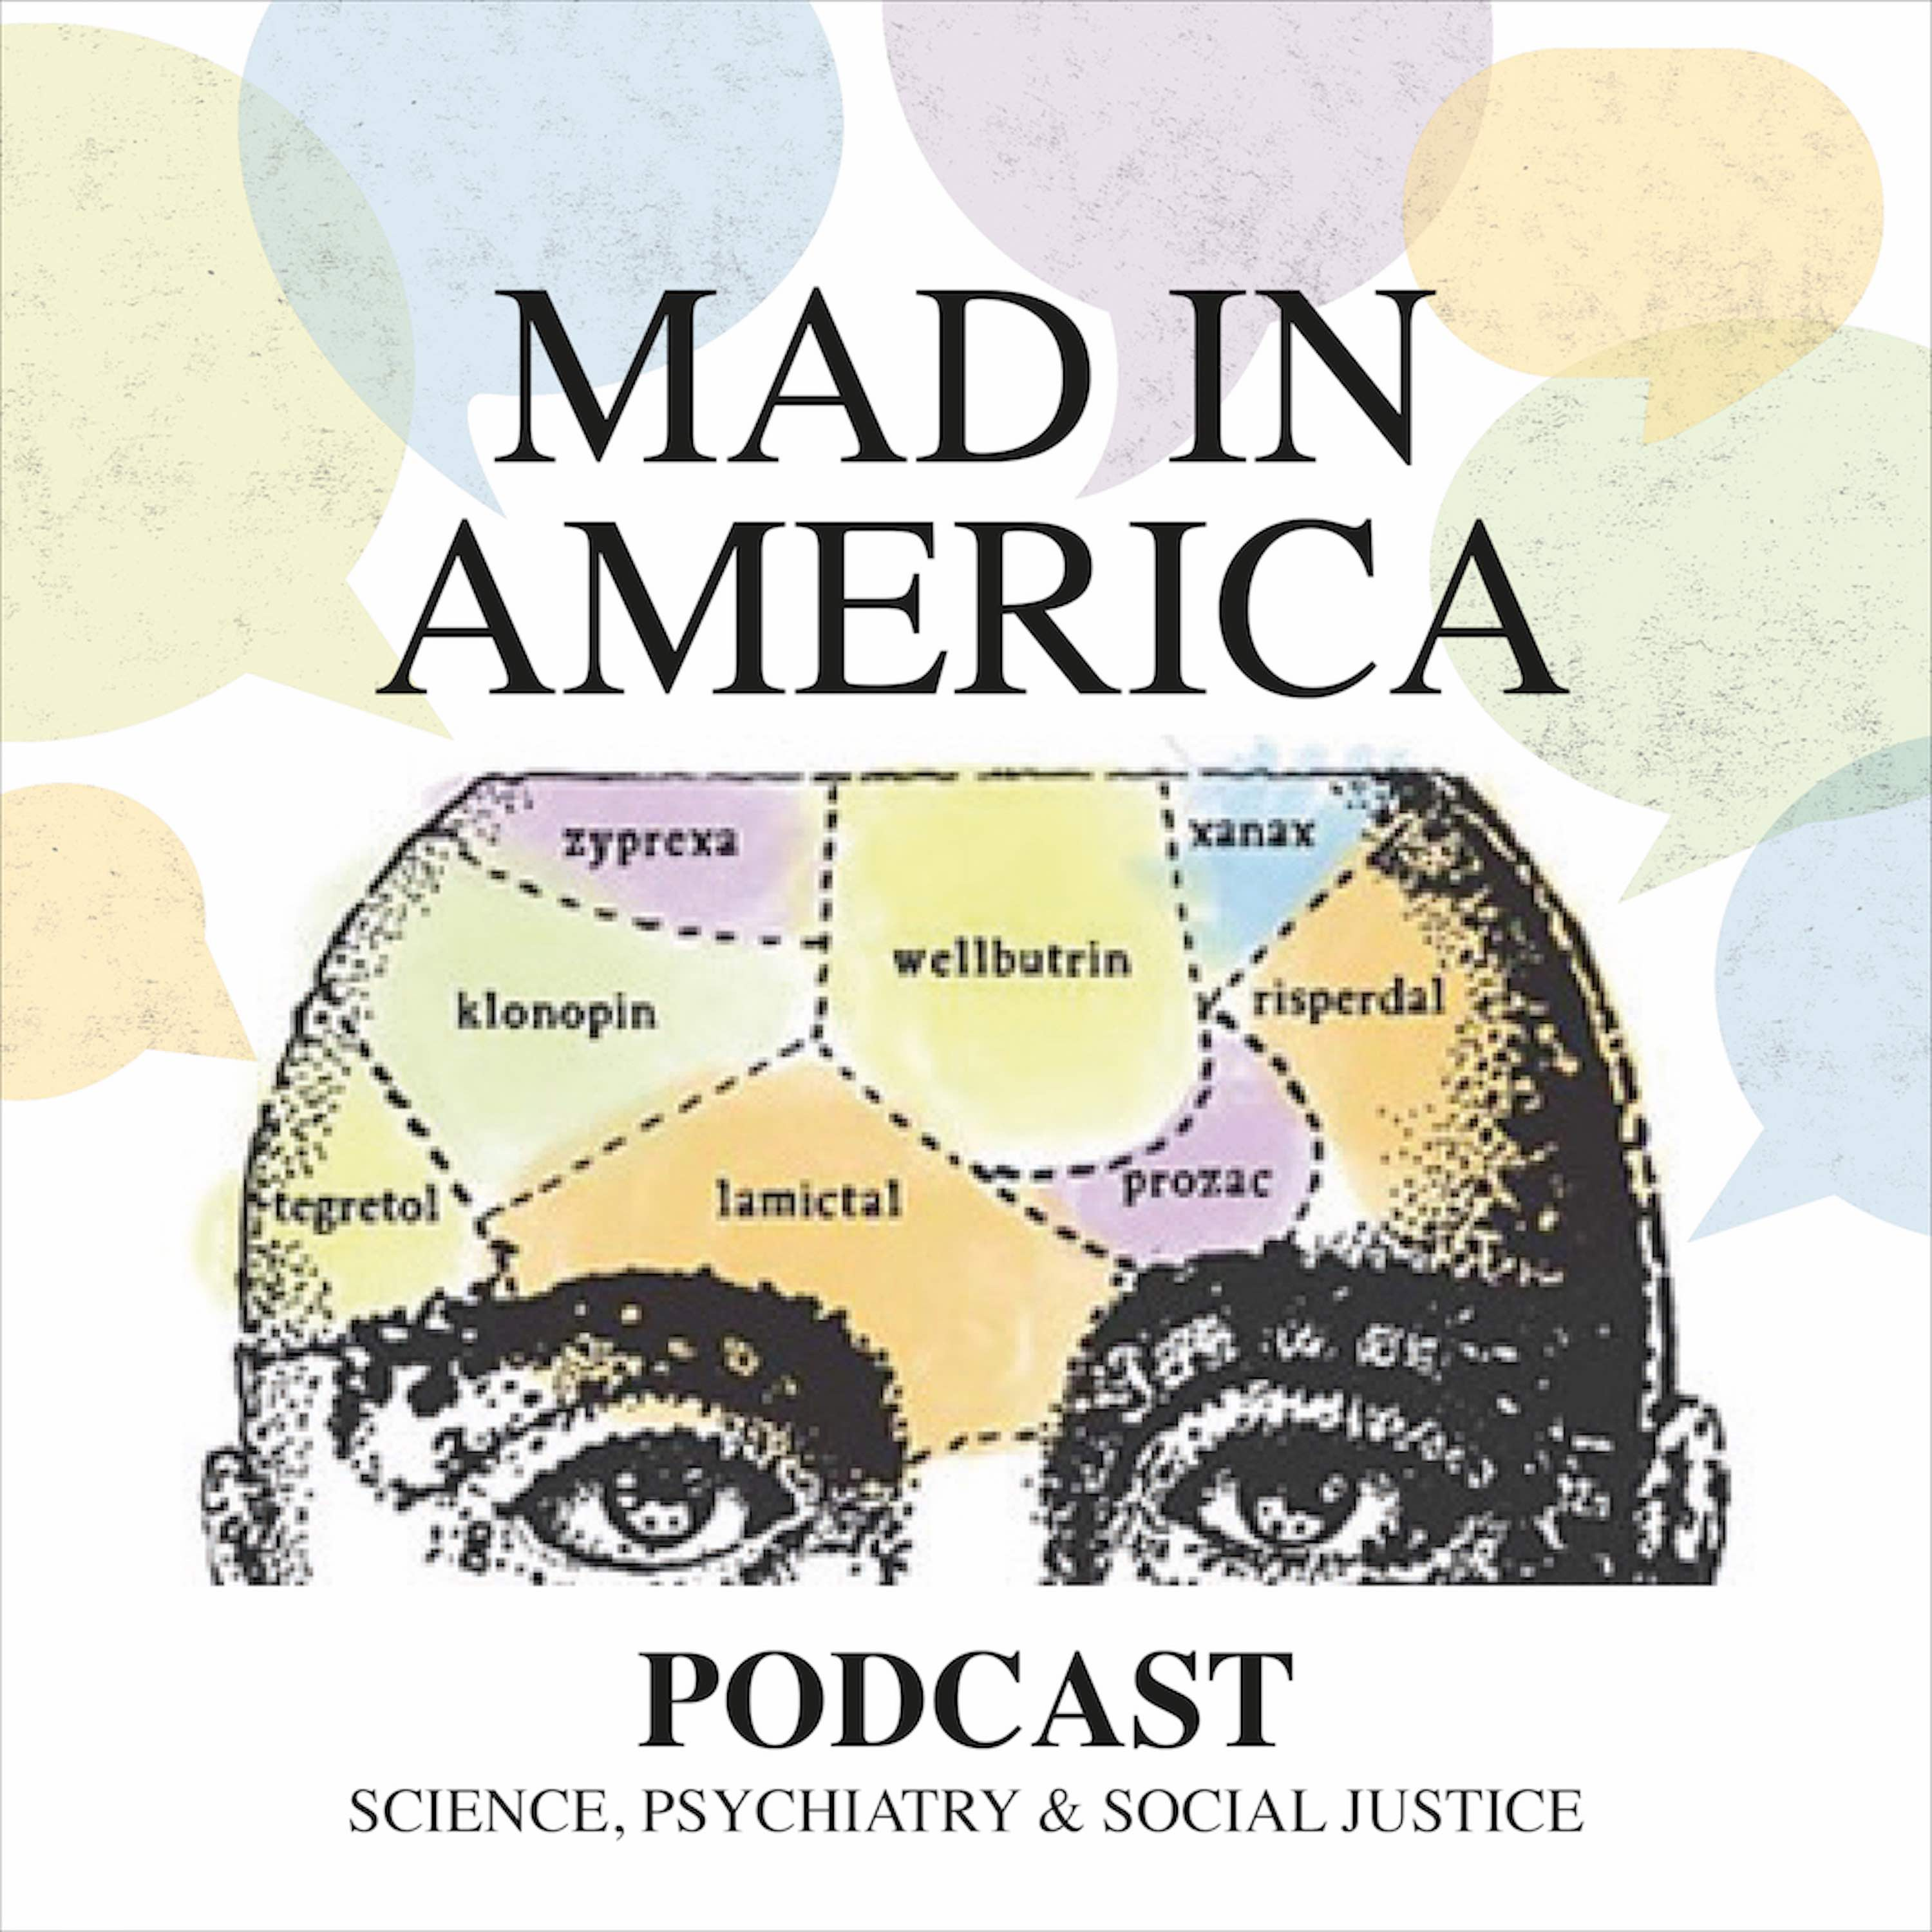 Mad in America: Rethinking Mental Health - Lillian Comas-Diaz - Addressing the Roots of Racial Trauma